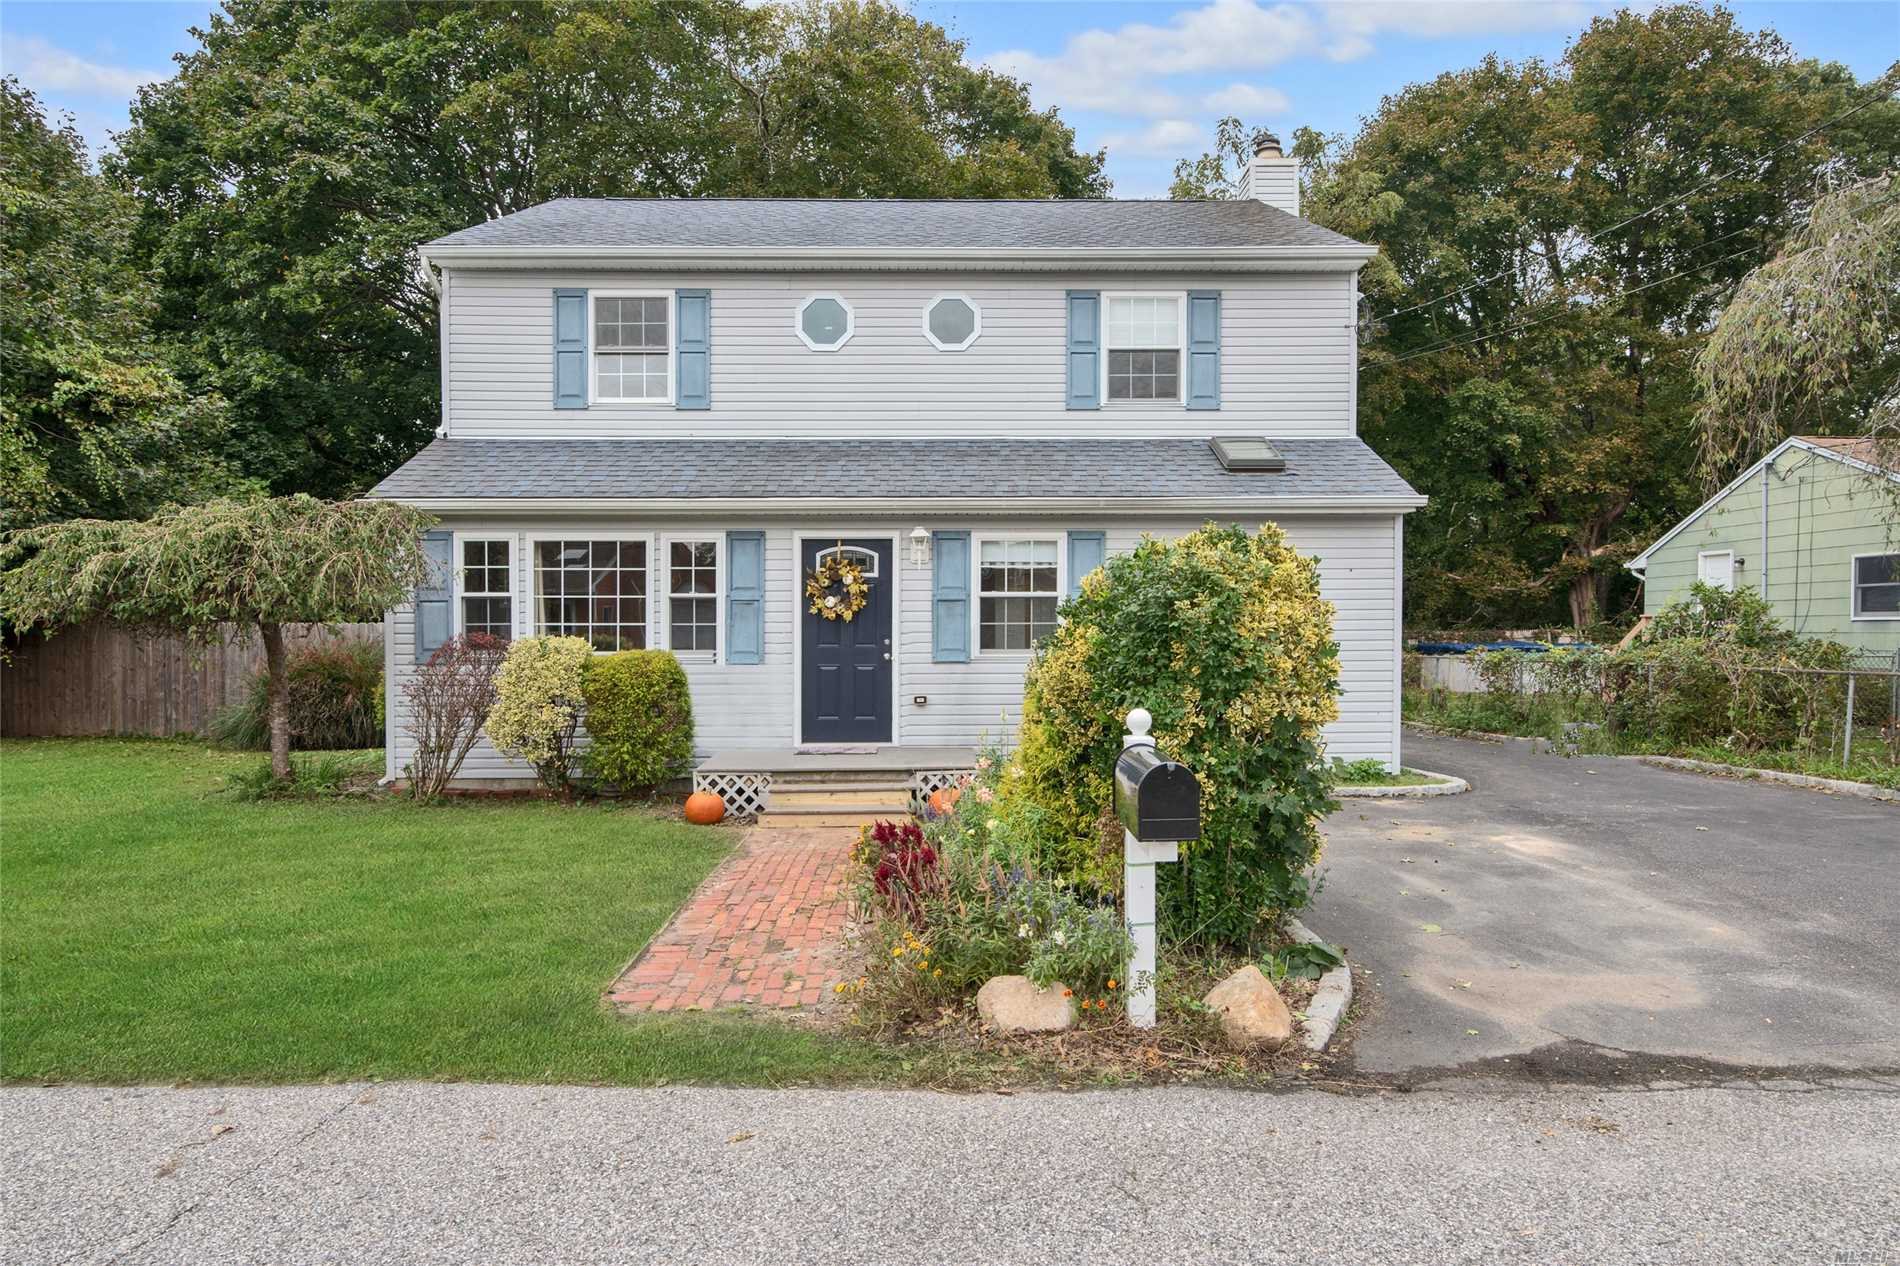 60 Furman Ave - E. Patchogue, New York